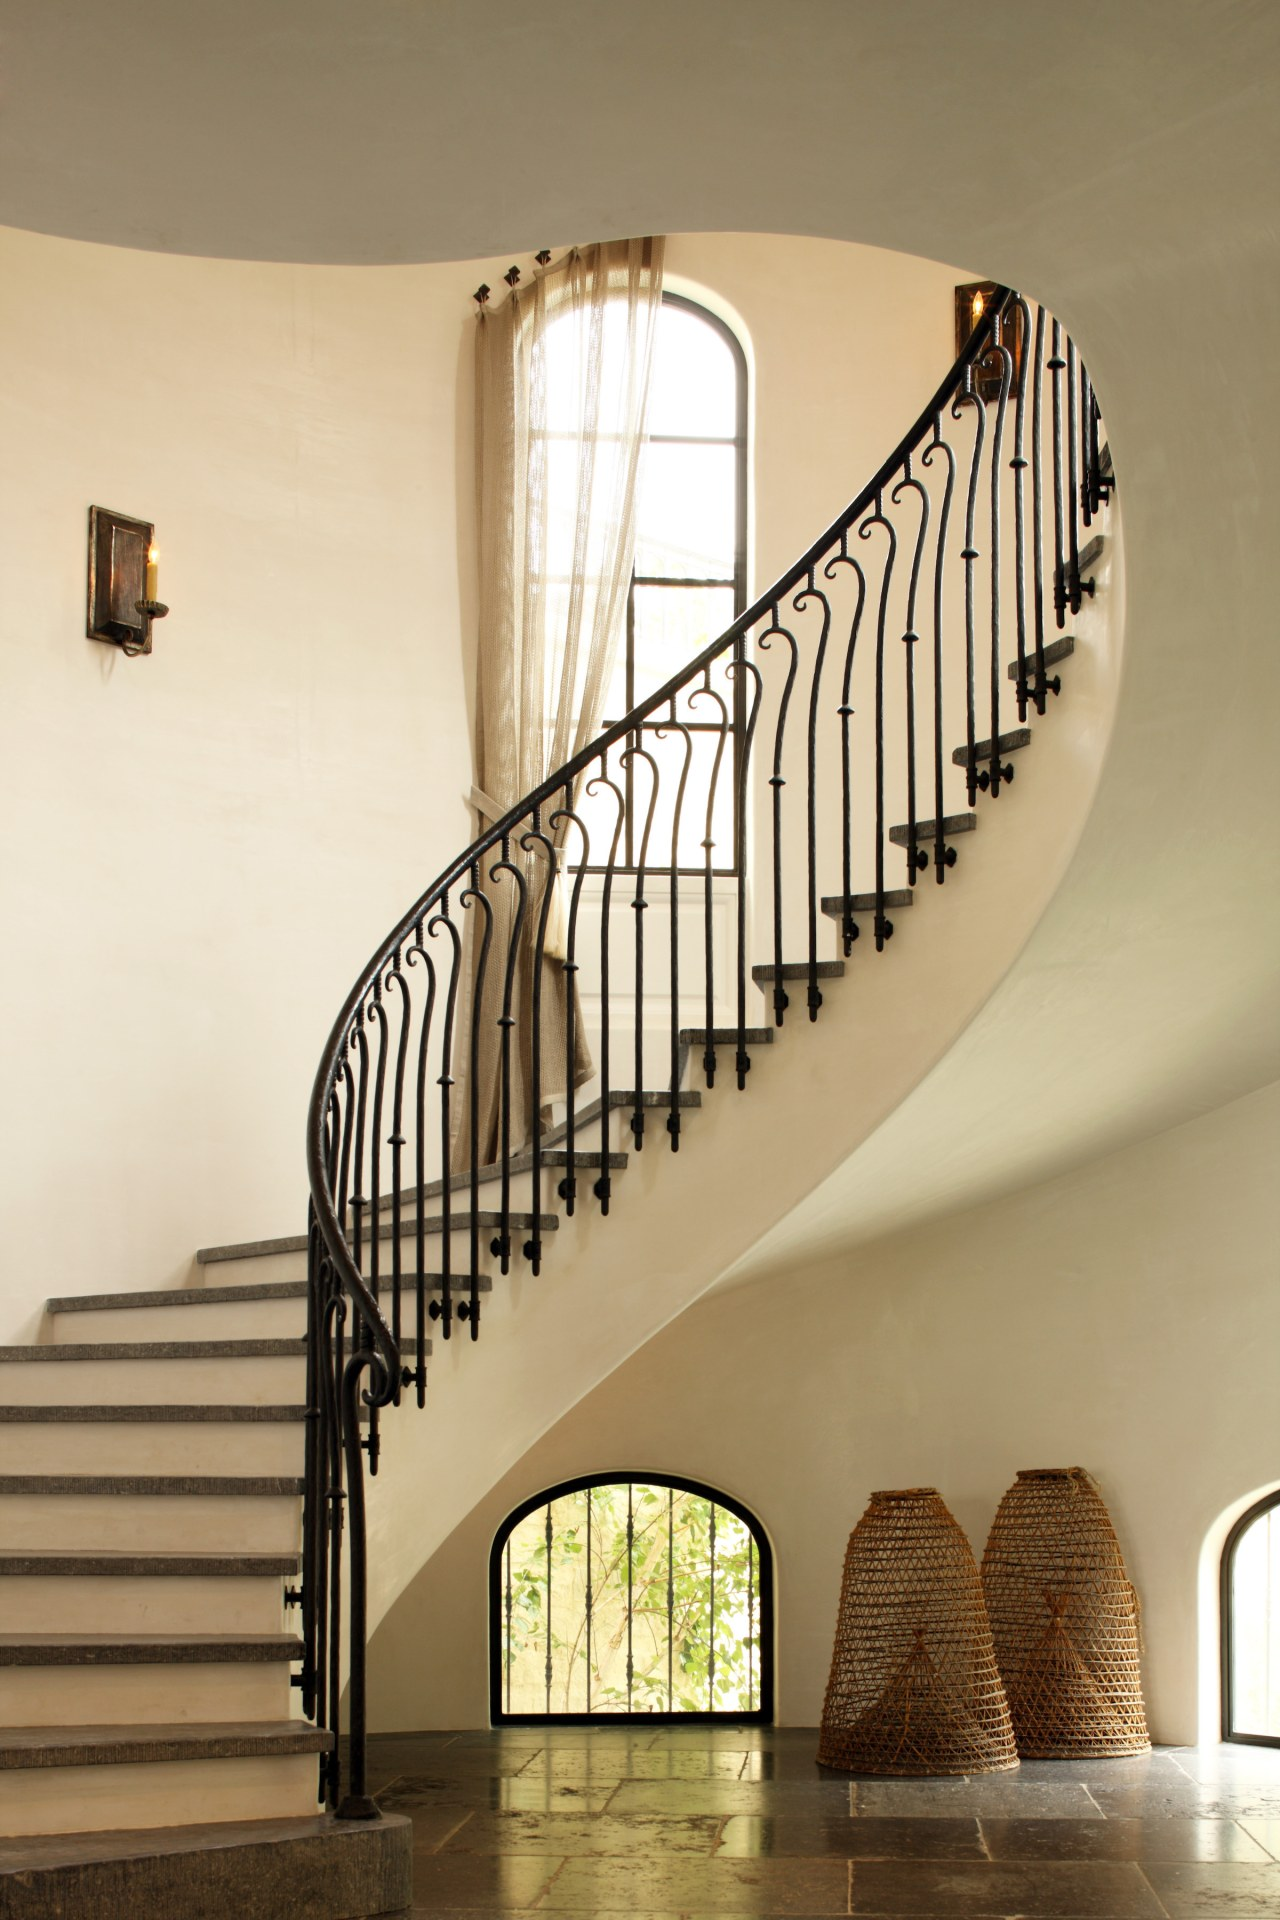 This graceful staircase, lined with bespoke wrought iron